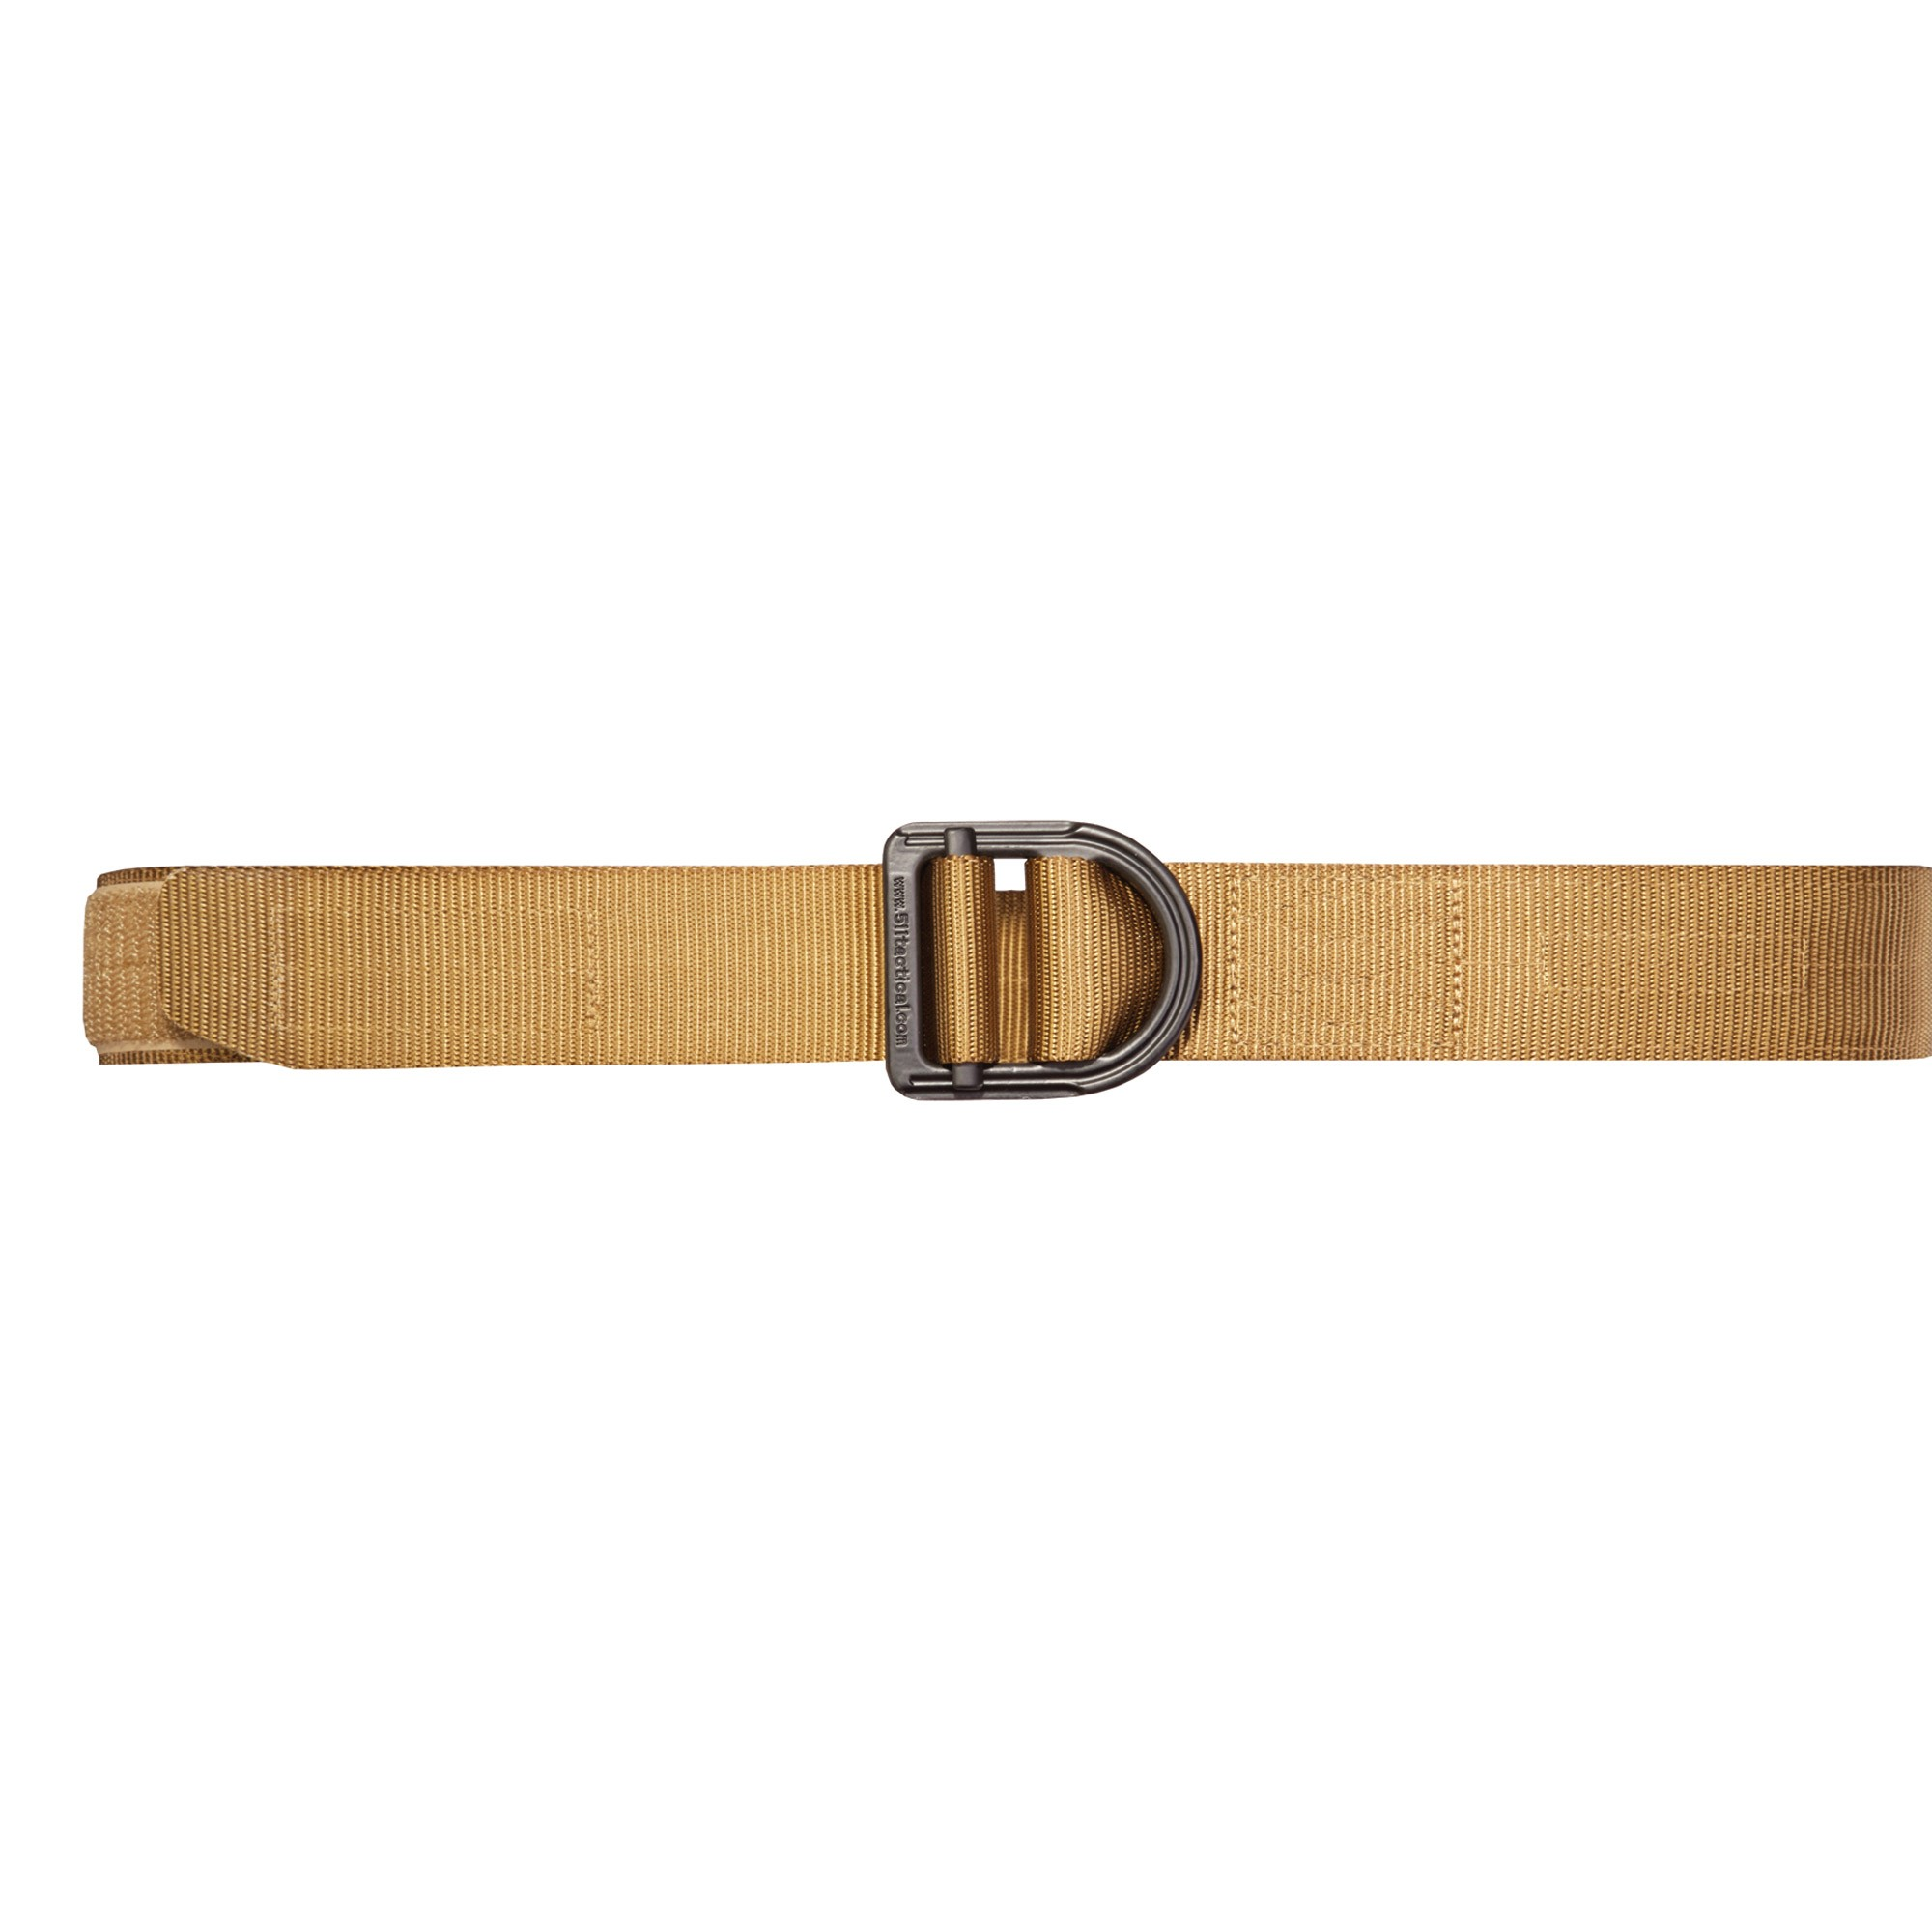 Ремень 5.11 Operator Belt - 1 3/4 Wide coyote brown